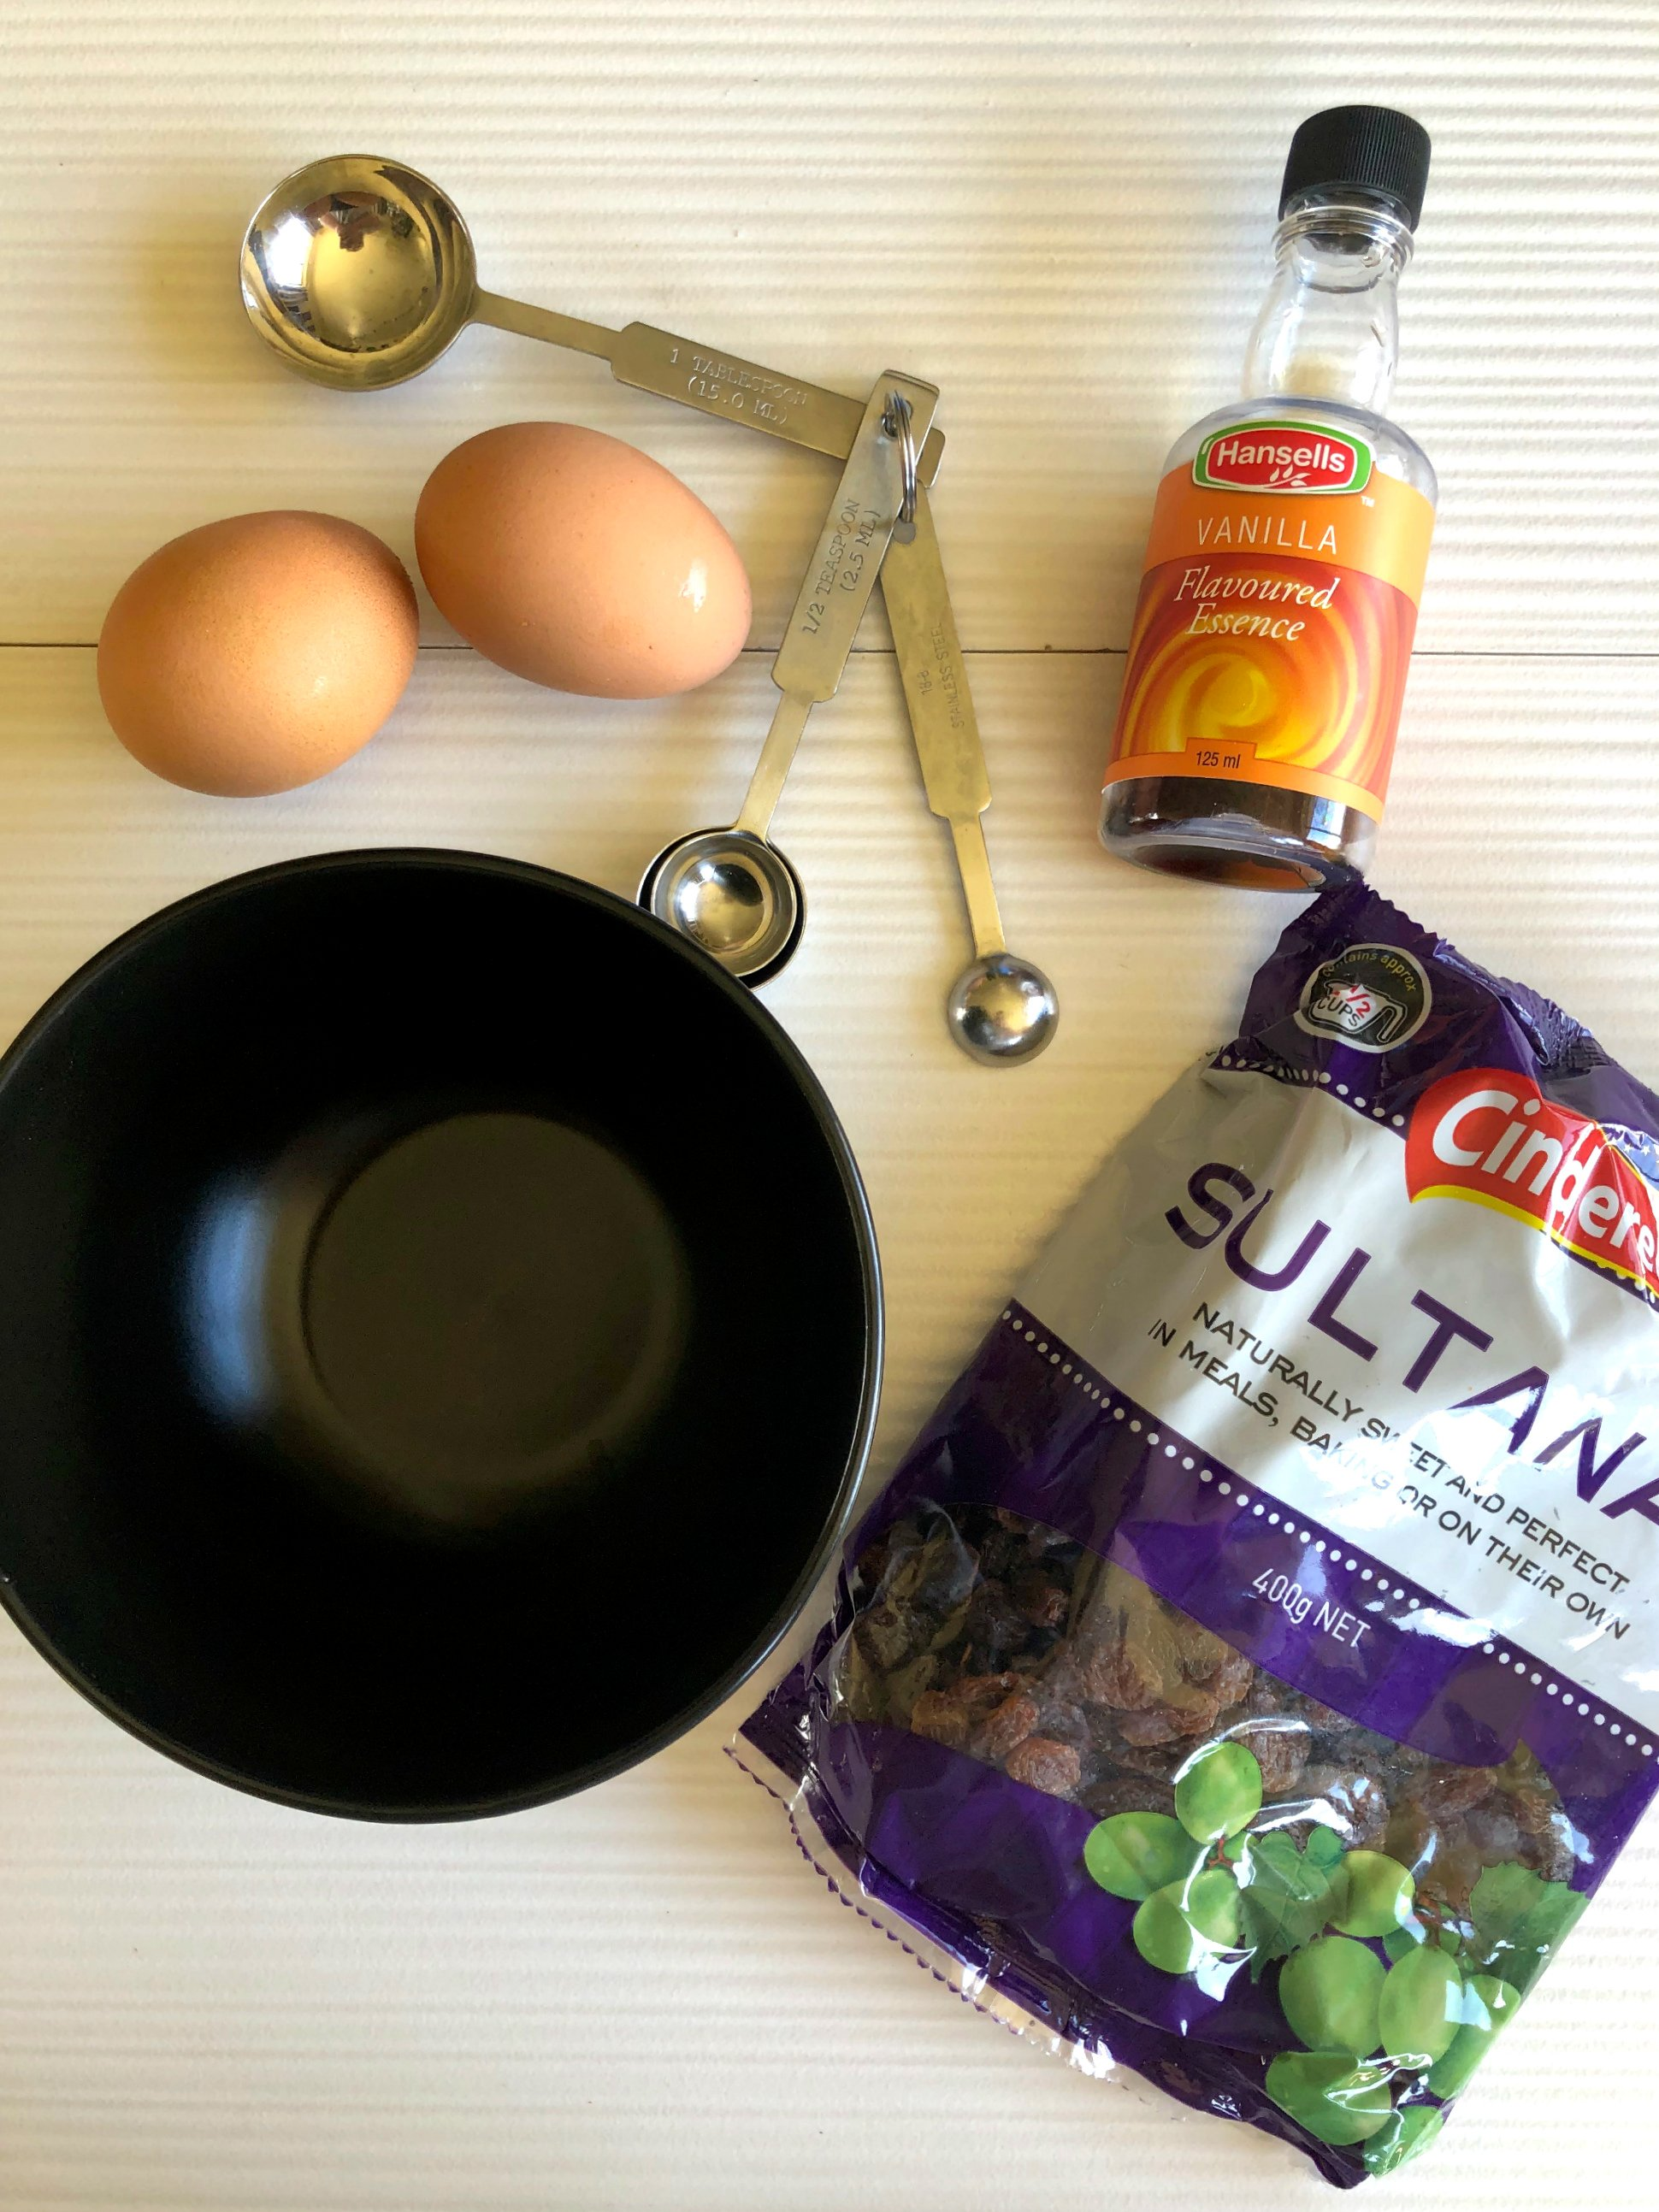 Soak the Sultanas or Raisins in egg and vanilla for great oatmeal Raisins